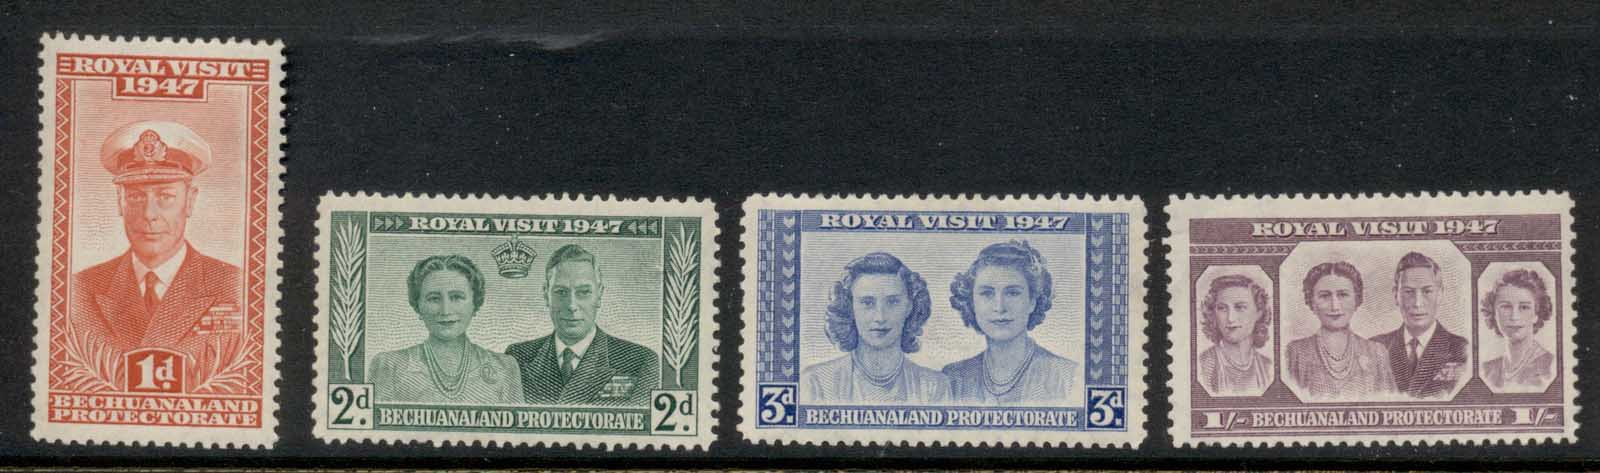 Bechuanaland Protectorate 1947 Royal Visit MLH